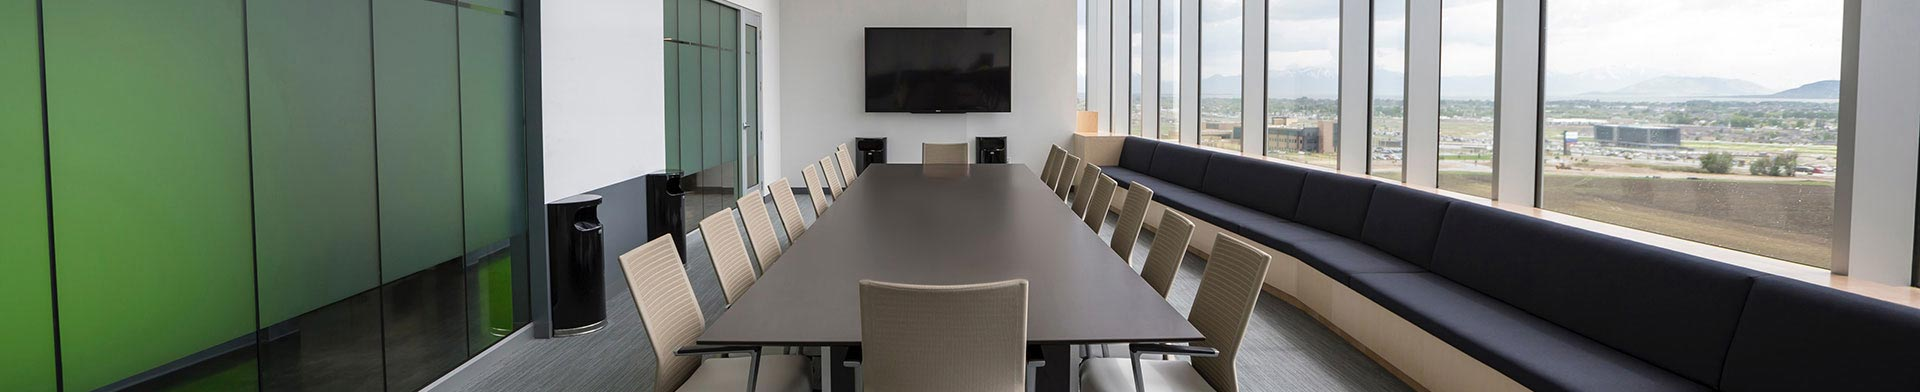 Audio Visual Solutions for Boardrooms